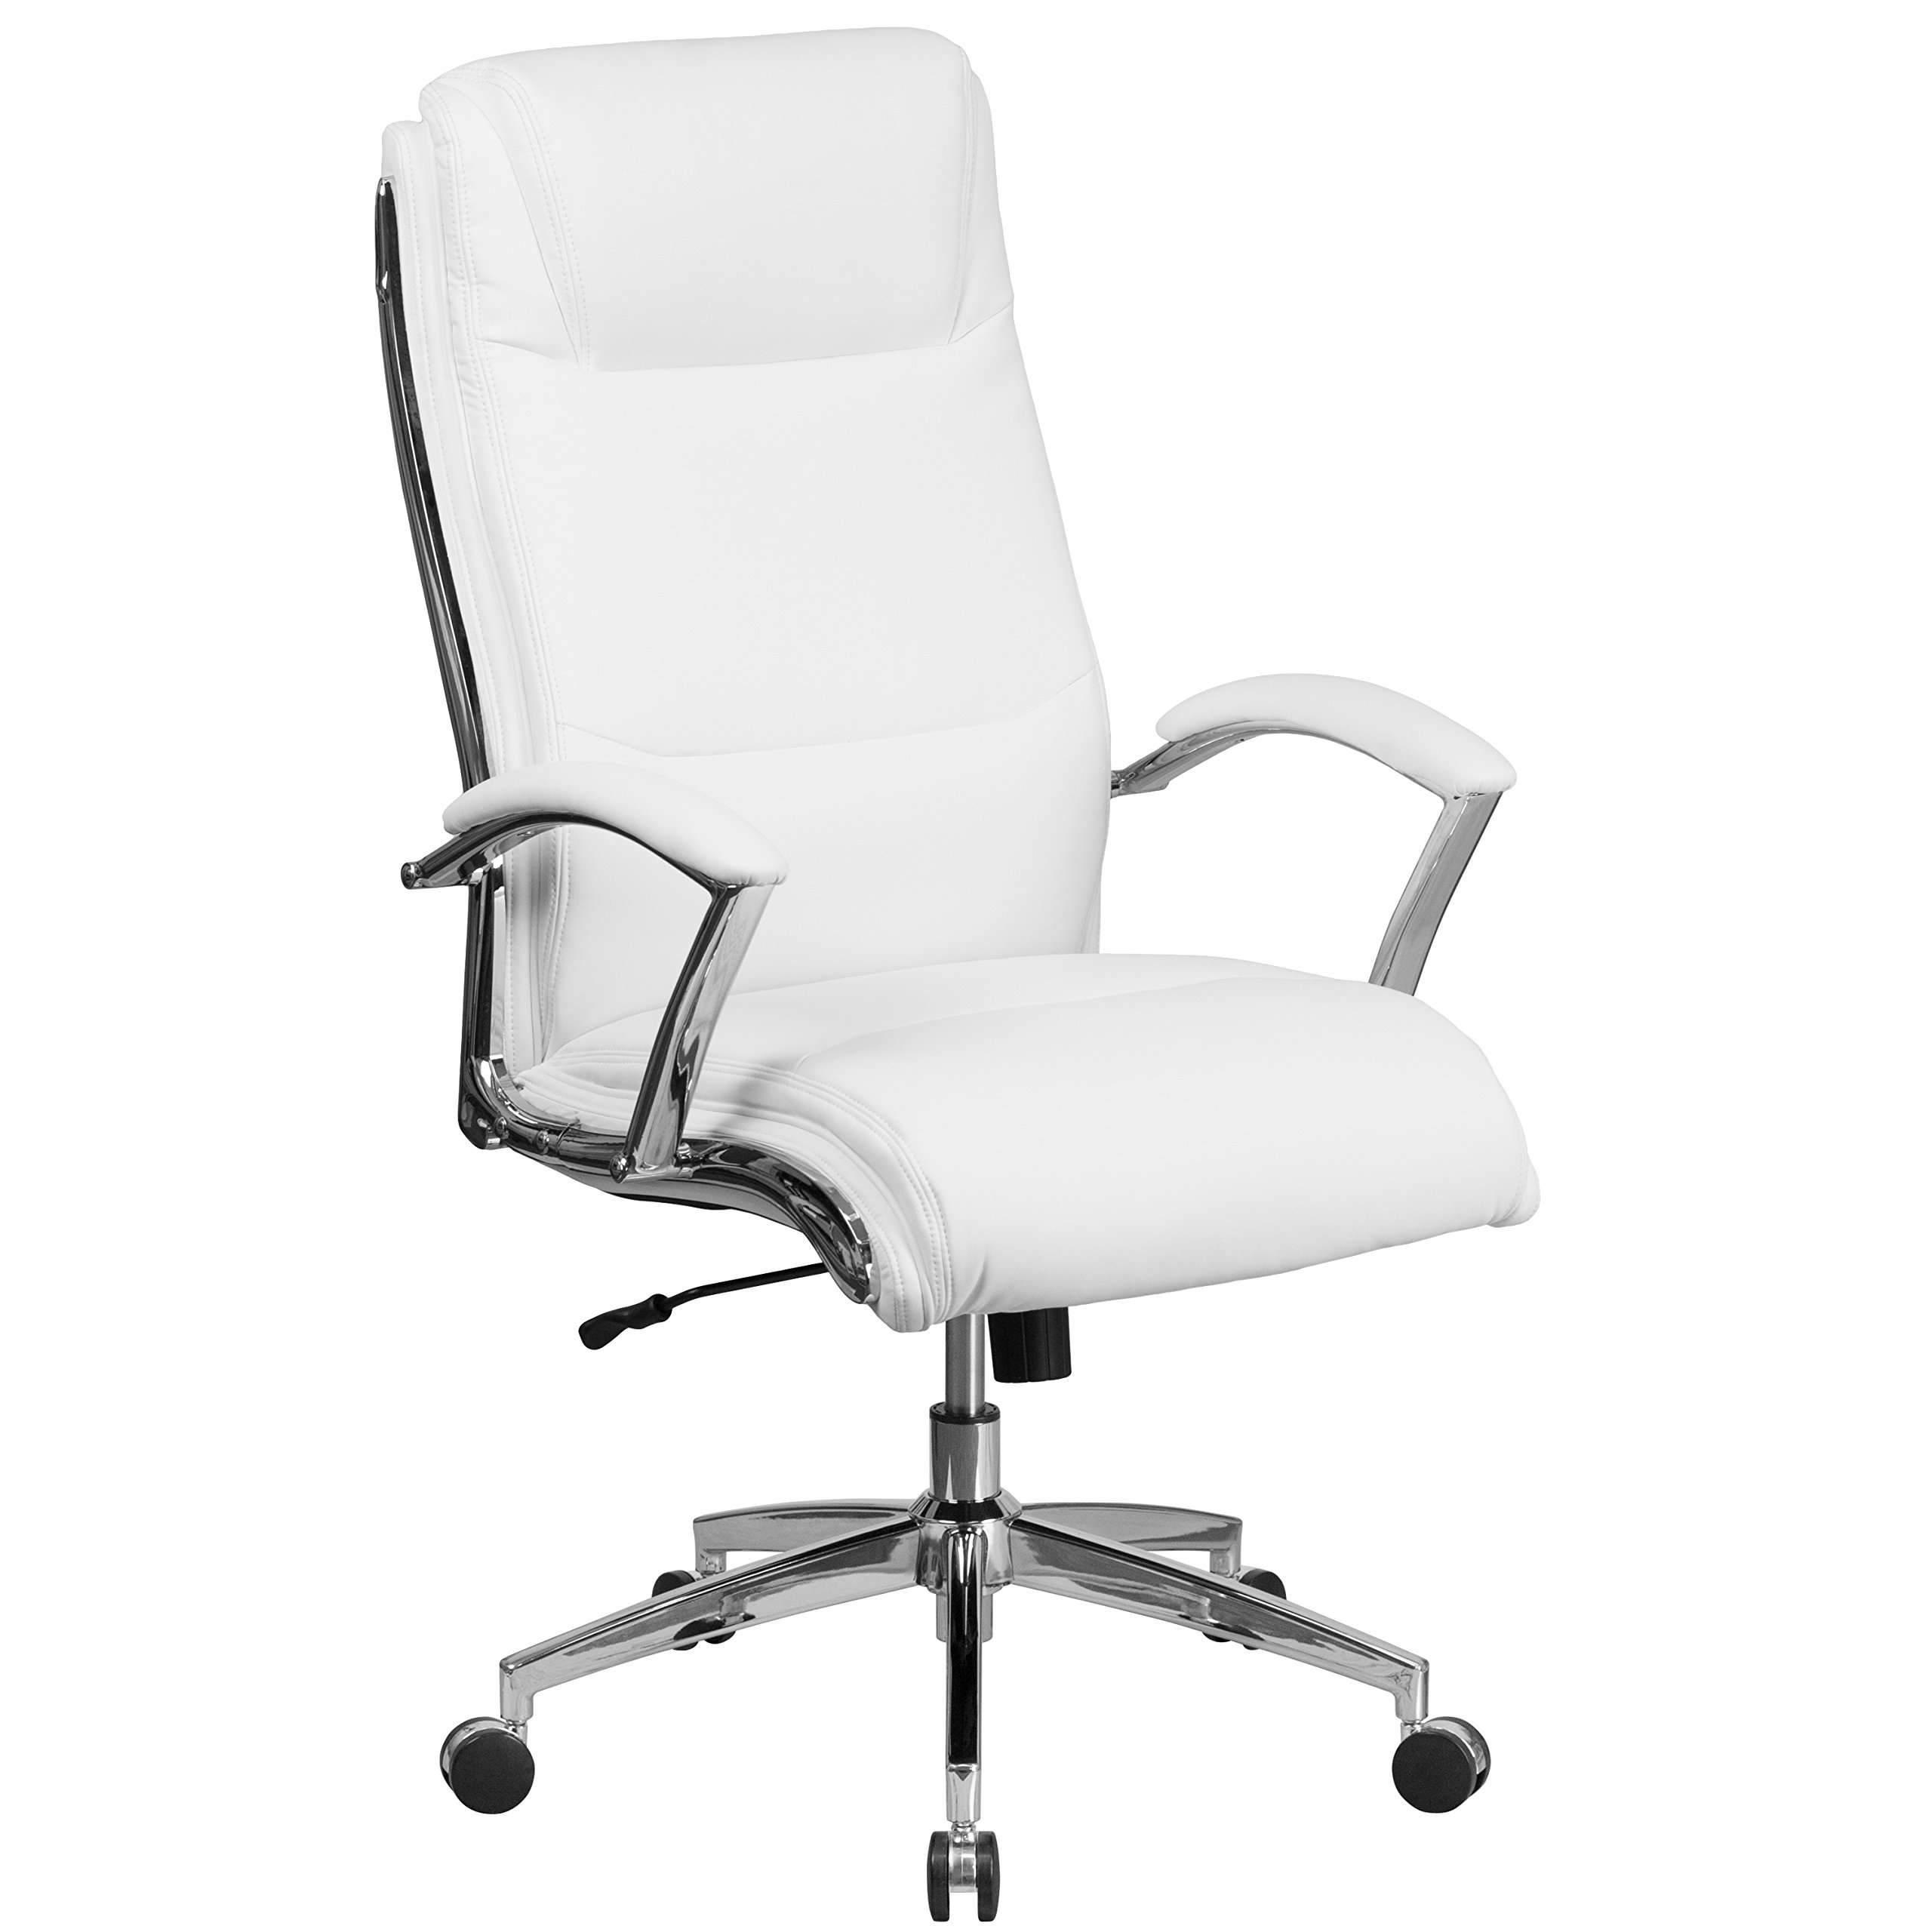 Flash Furniture High Back Designer White Leather Smooth Upholstered Executive Swivel Office Chair with Chrome Base and Arms by Flash Furniture